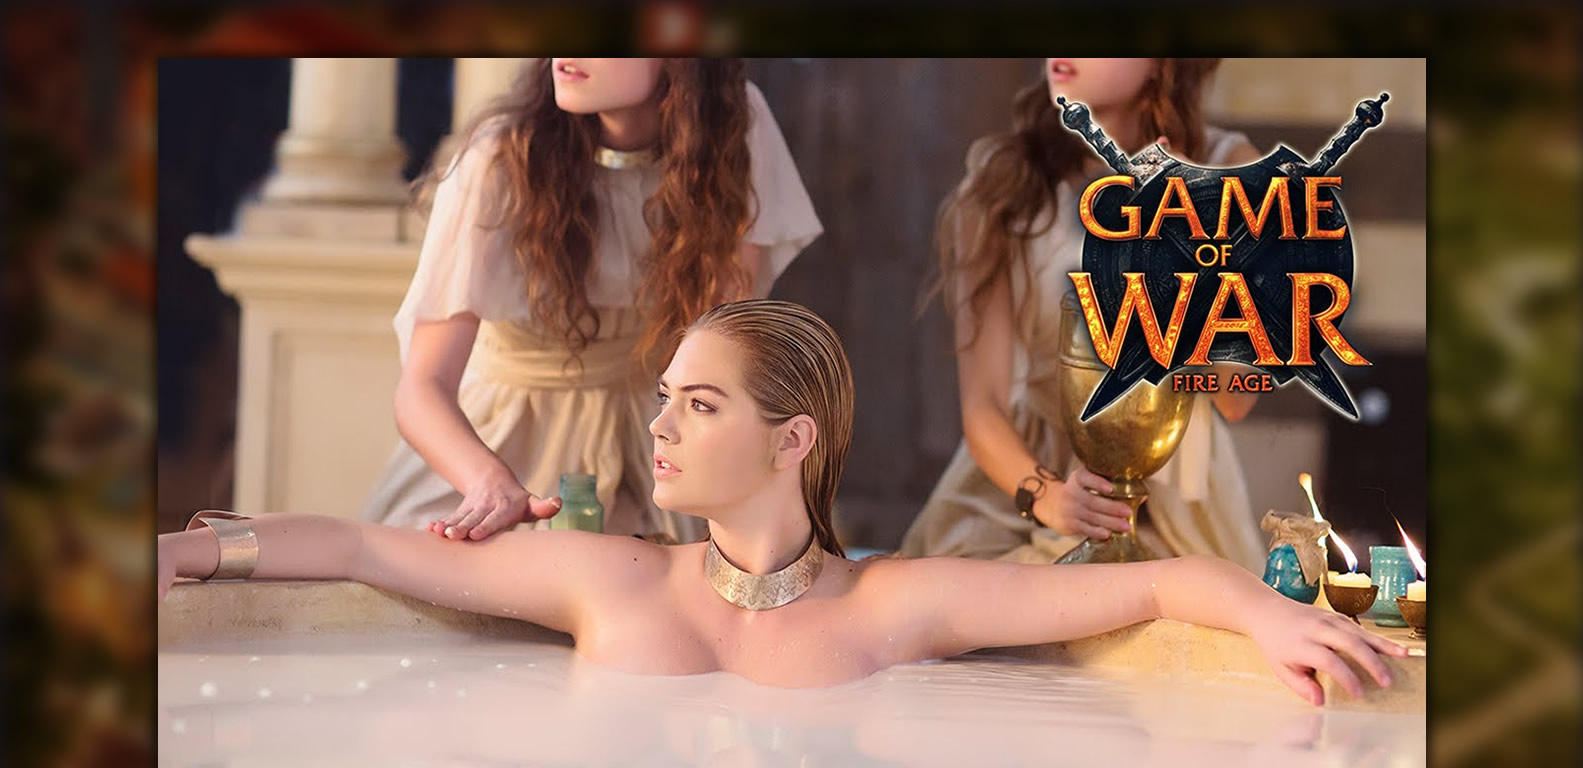 Game of War Fire Age Kate Upton